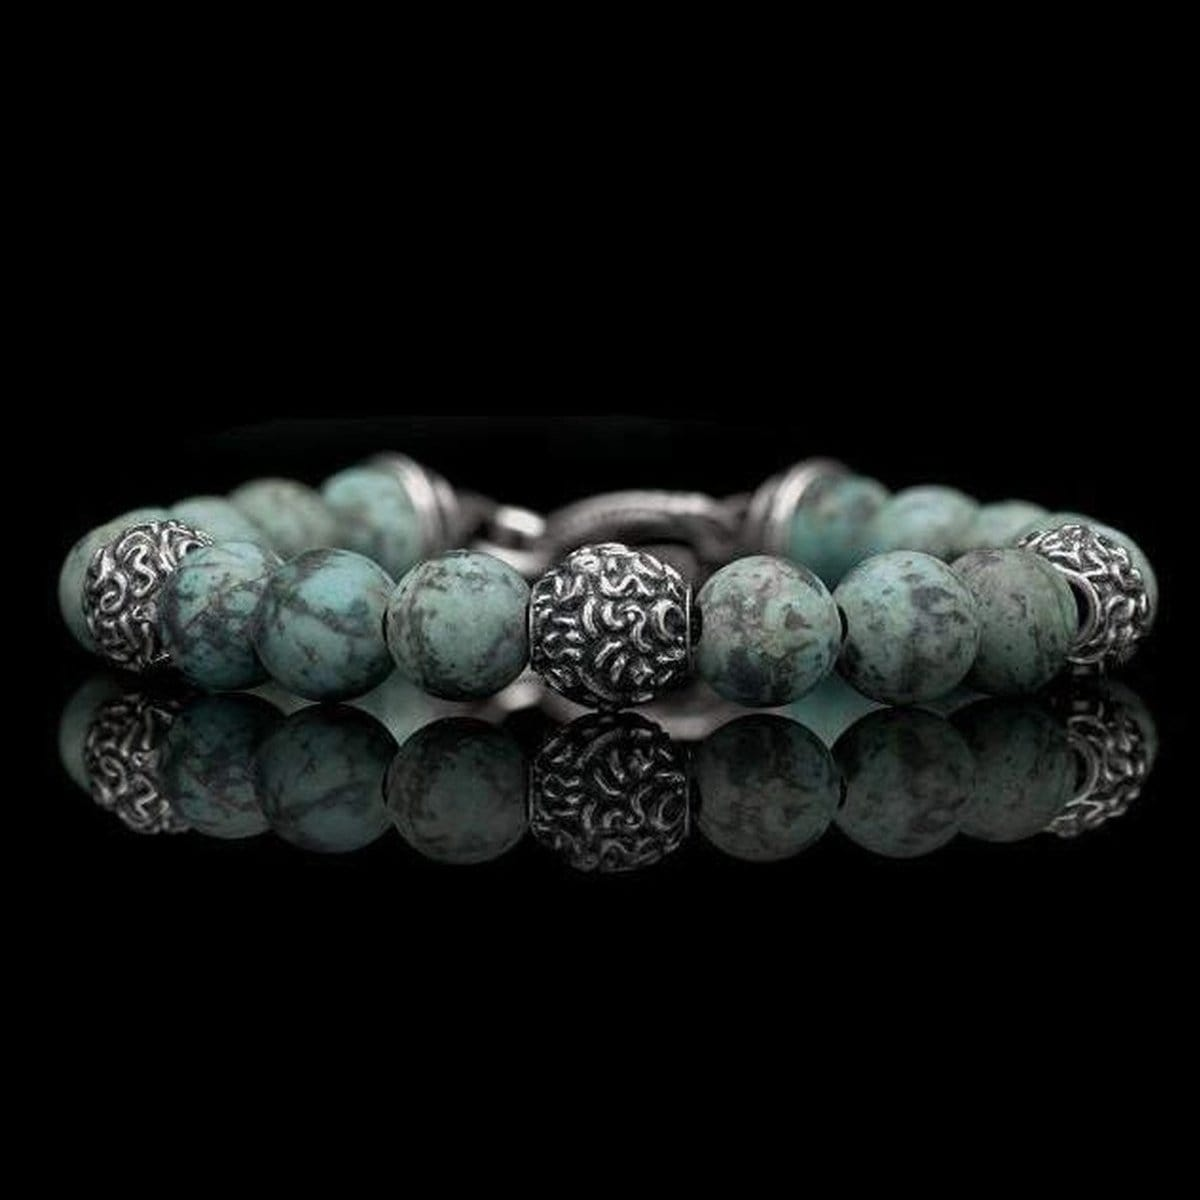 Men's Verdigris Bracelet - BB16 TQ-William Henry-Renee Taylor Gallery